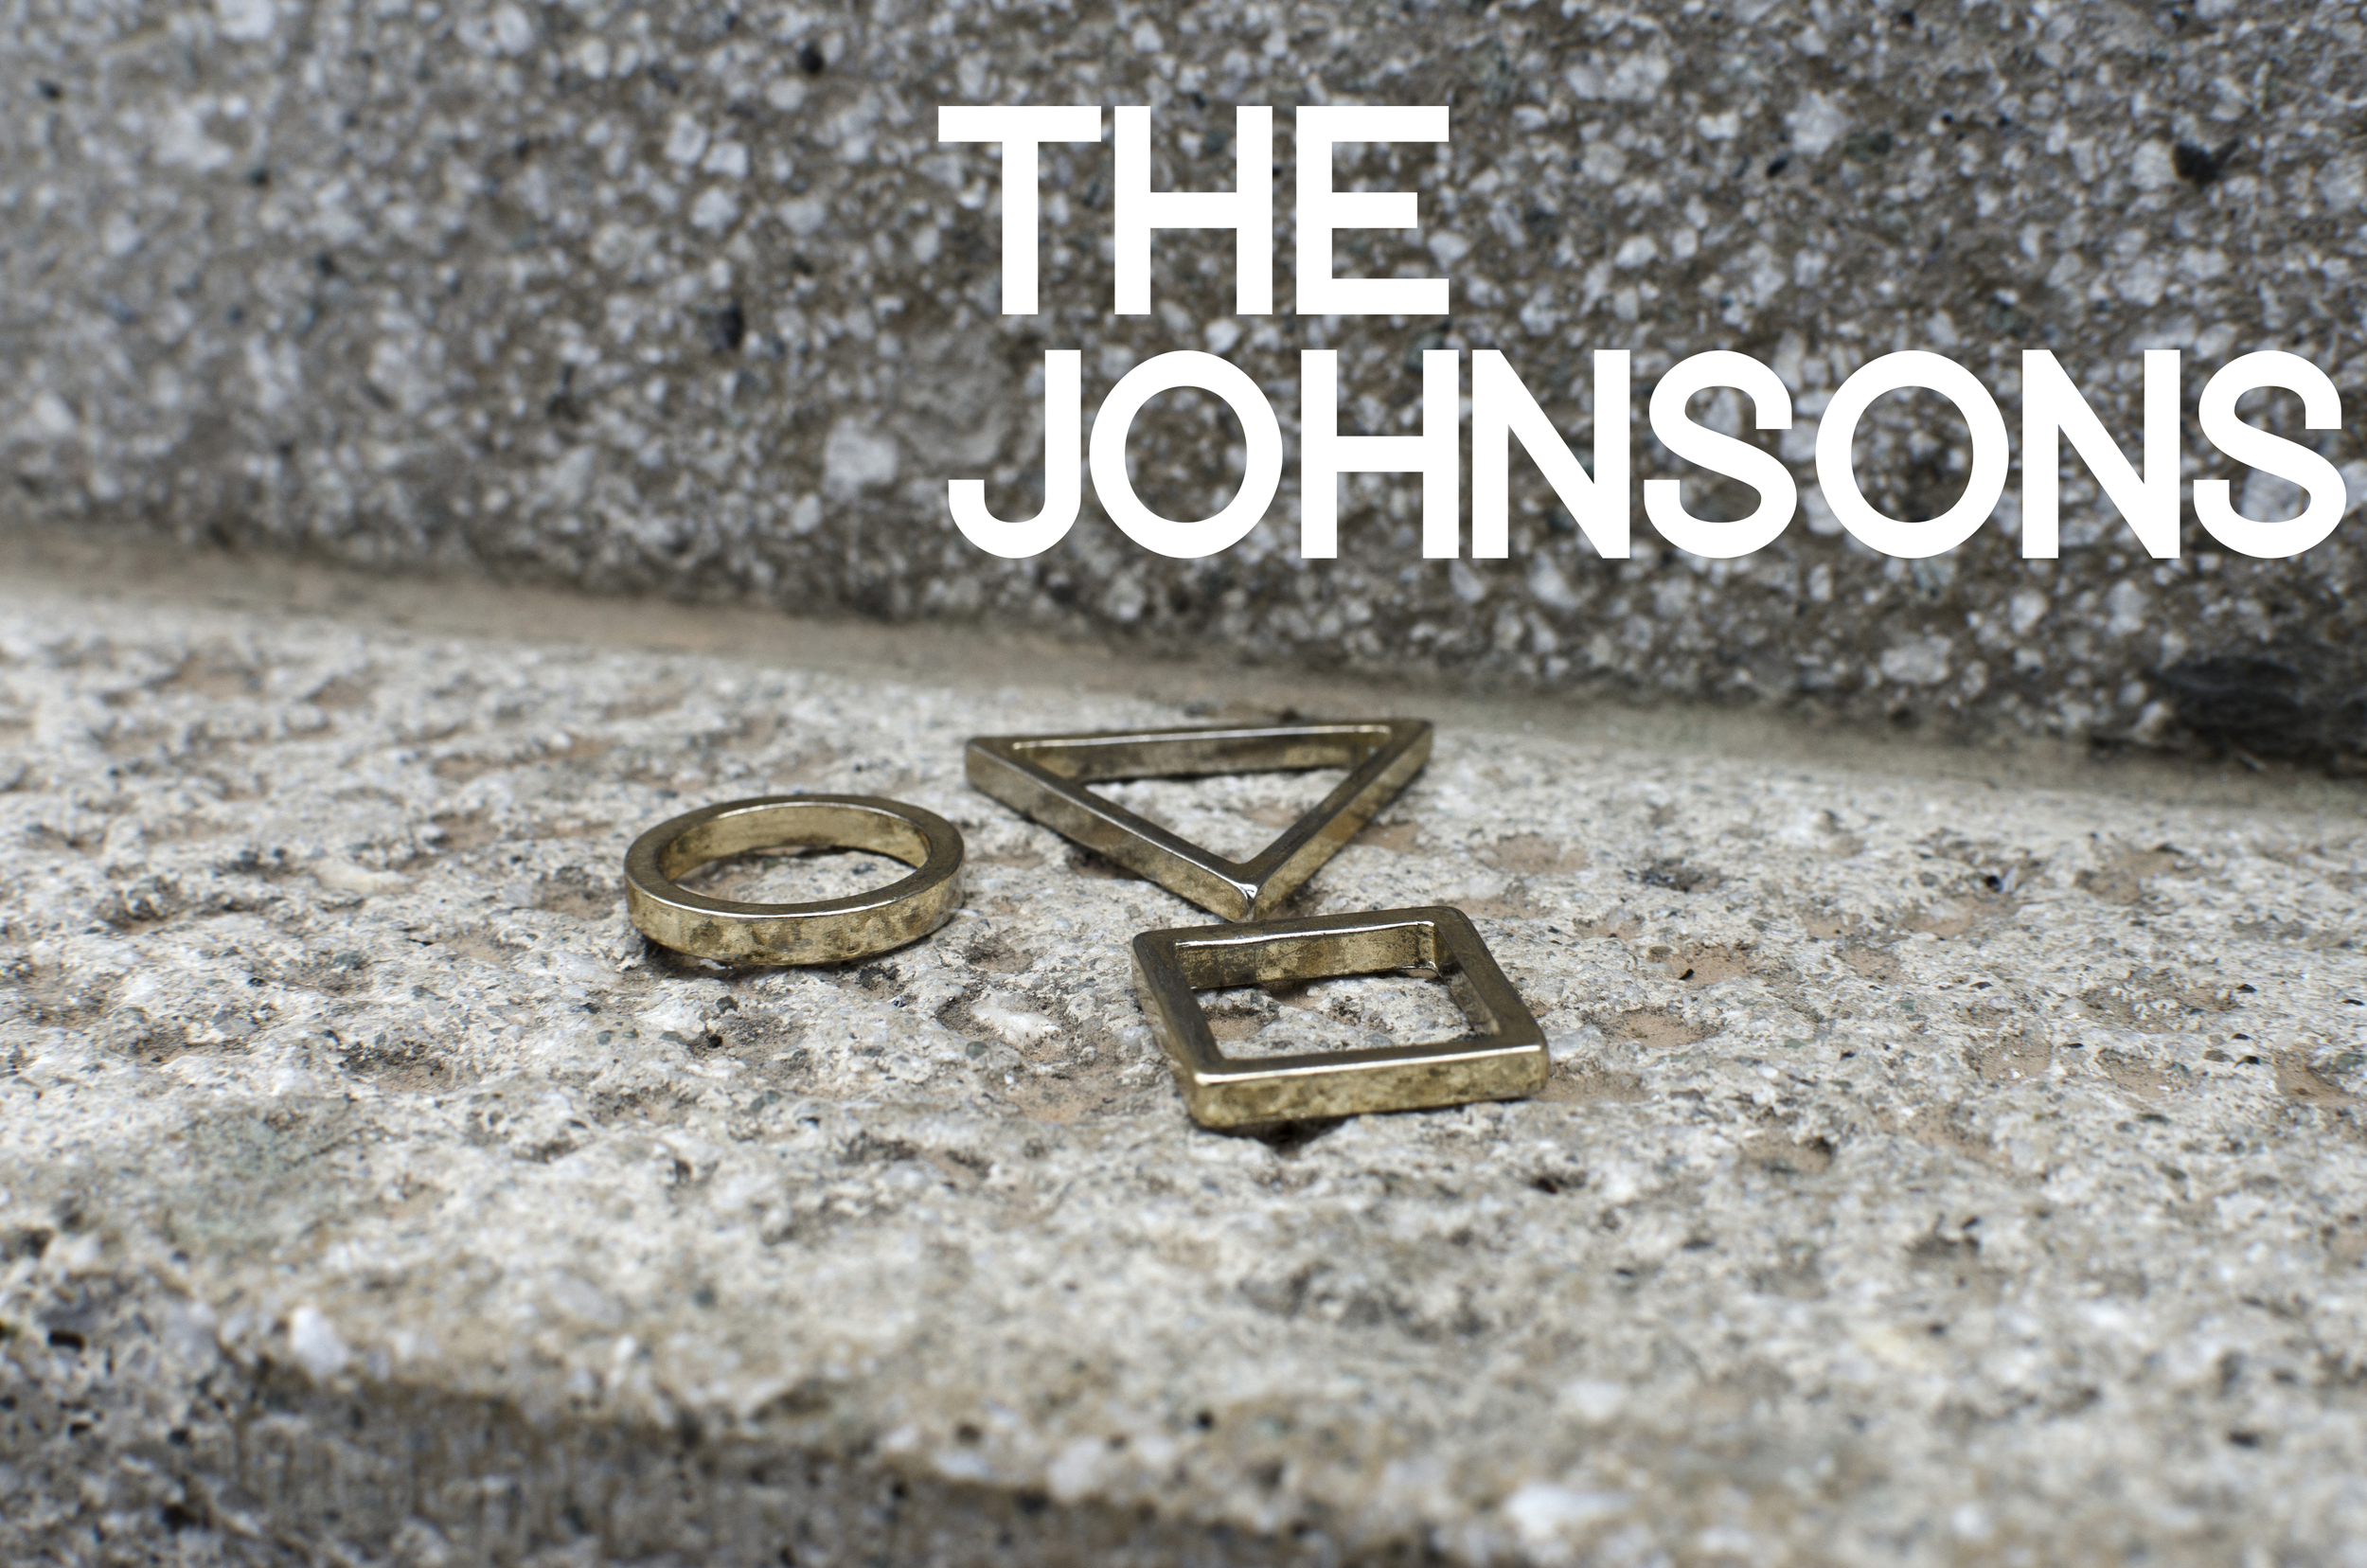 Anillos JOHNSONS.jpg